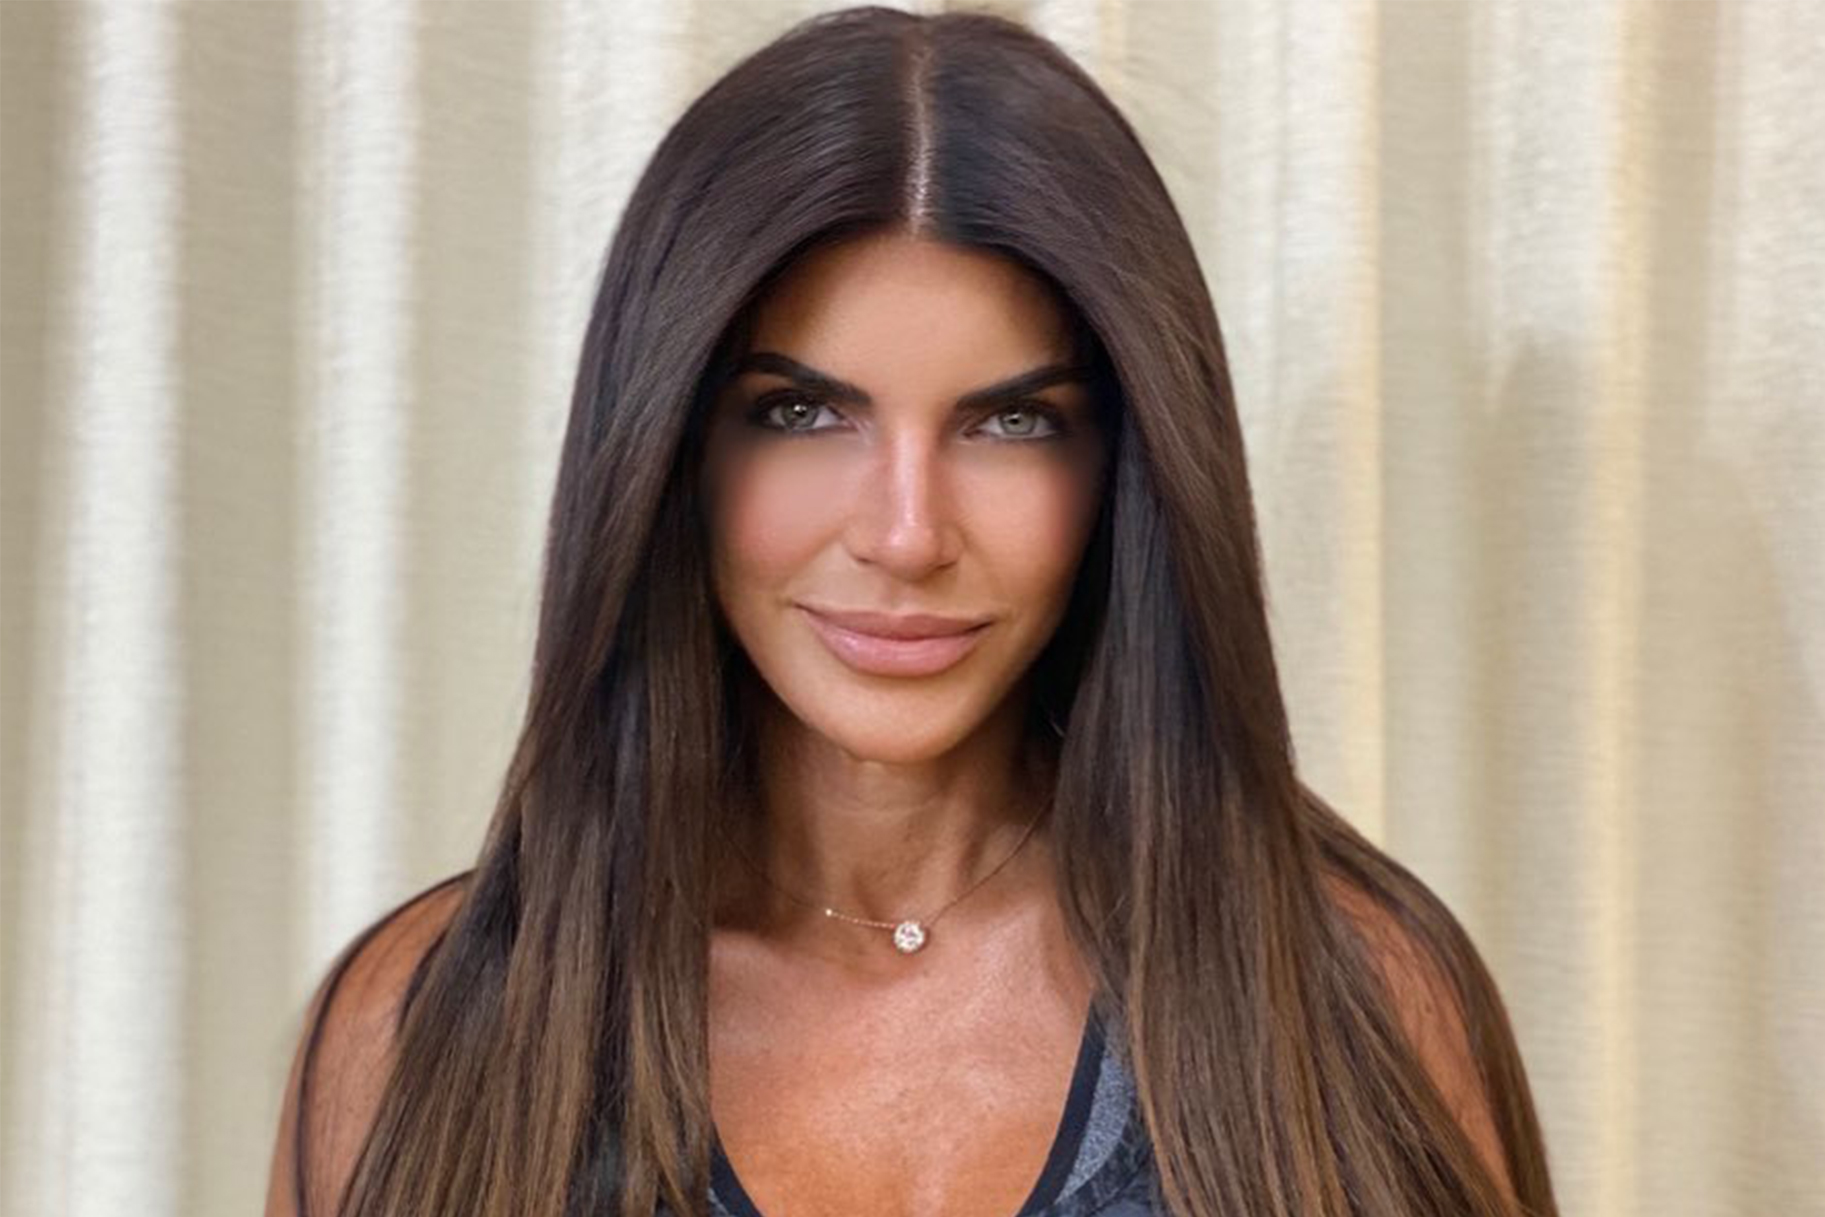 """teresa-giudice-shows-off-her-natural-beauty-in-video-with-no-makeup-on"""